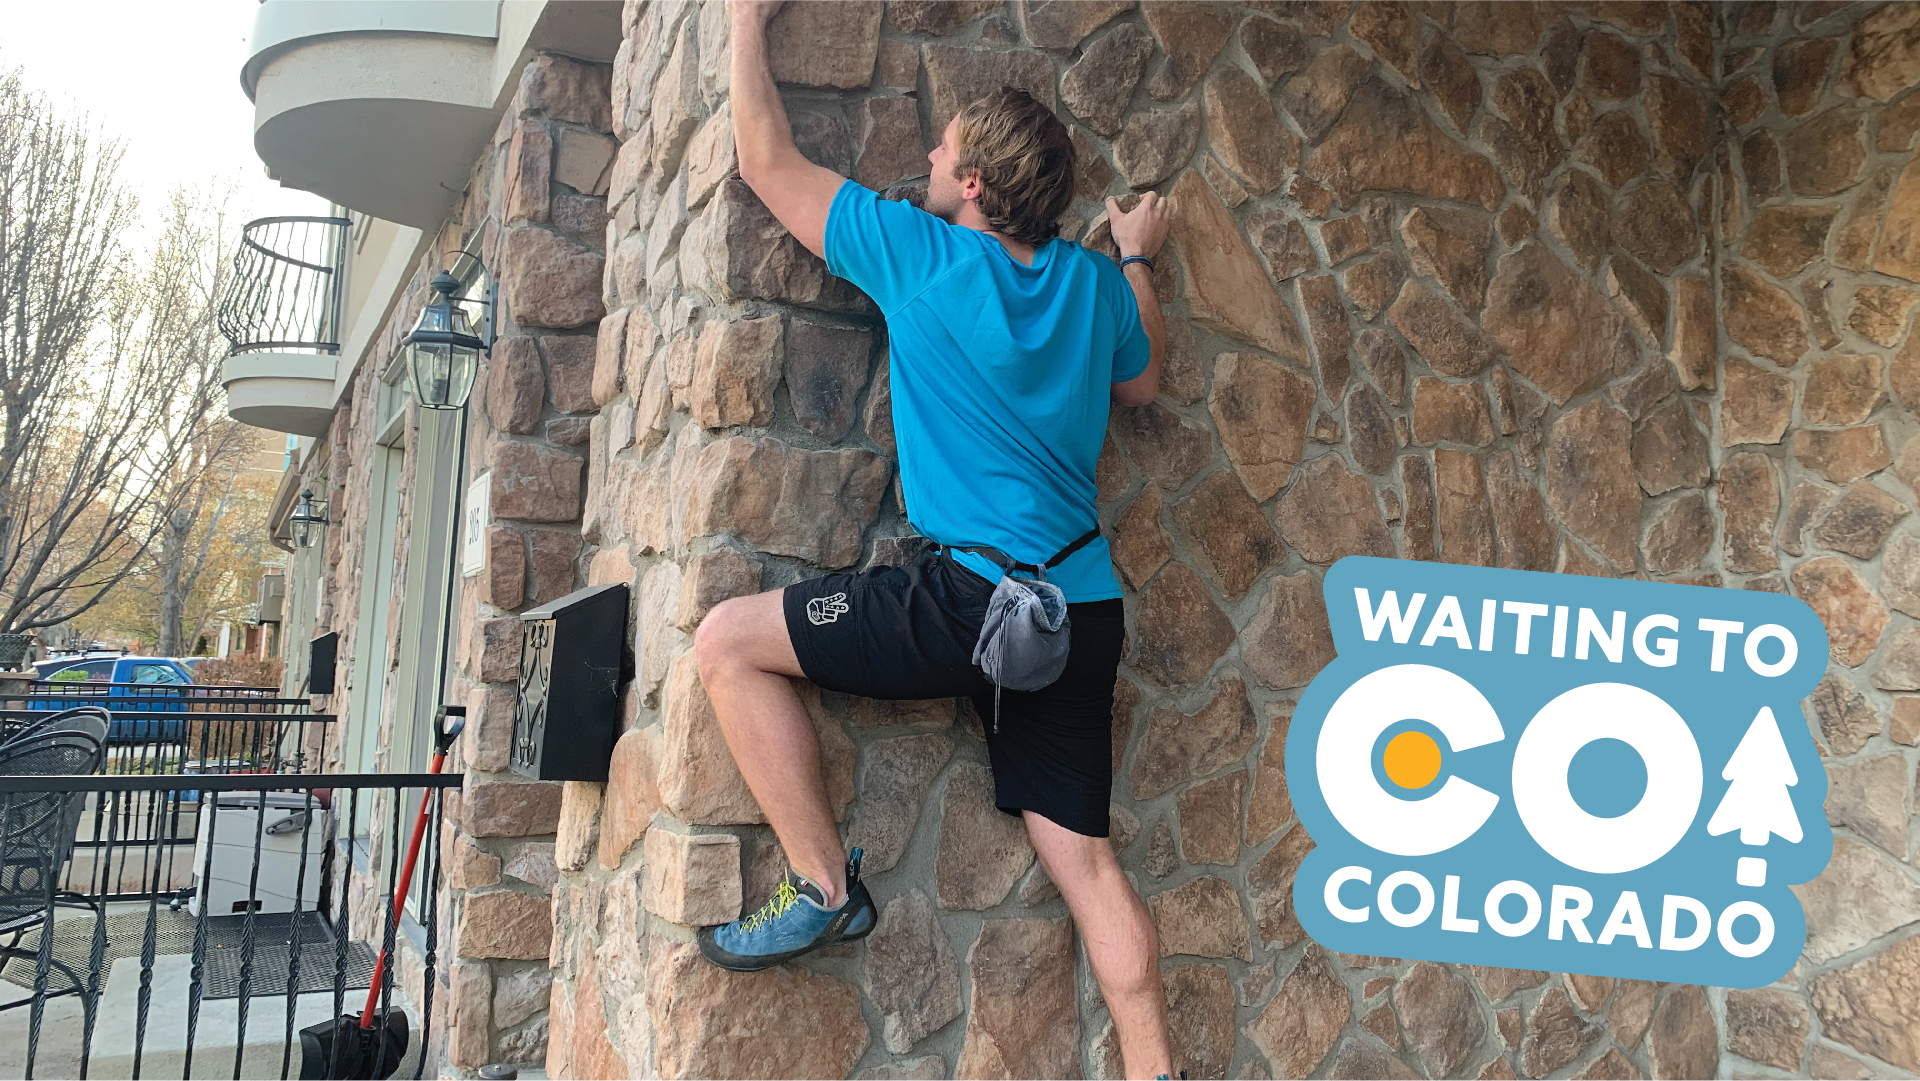 The Colorado Tourism Board says instead of traveling to rock climb, people could just practice it on the sides of their homes.